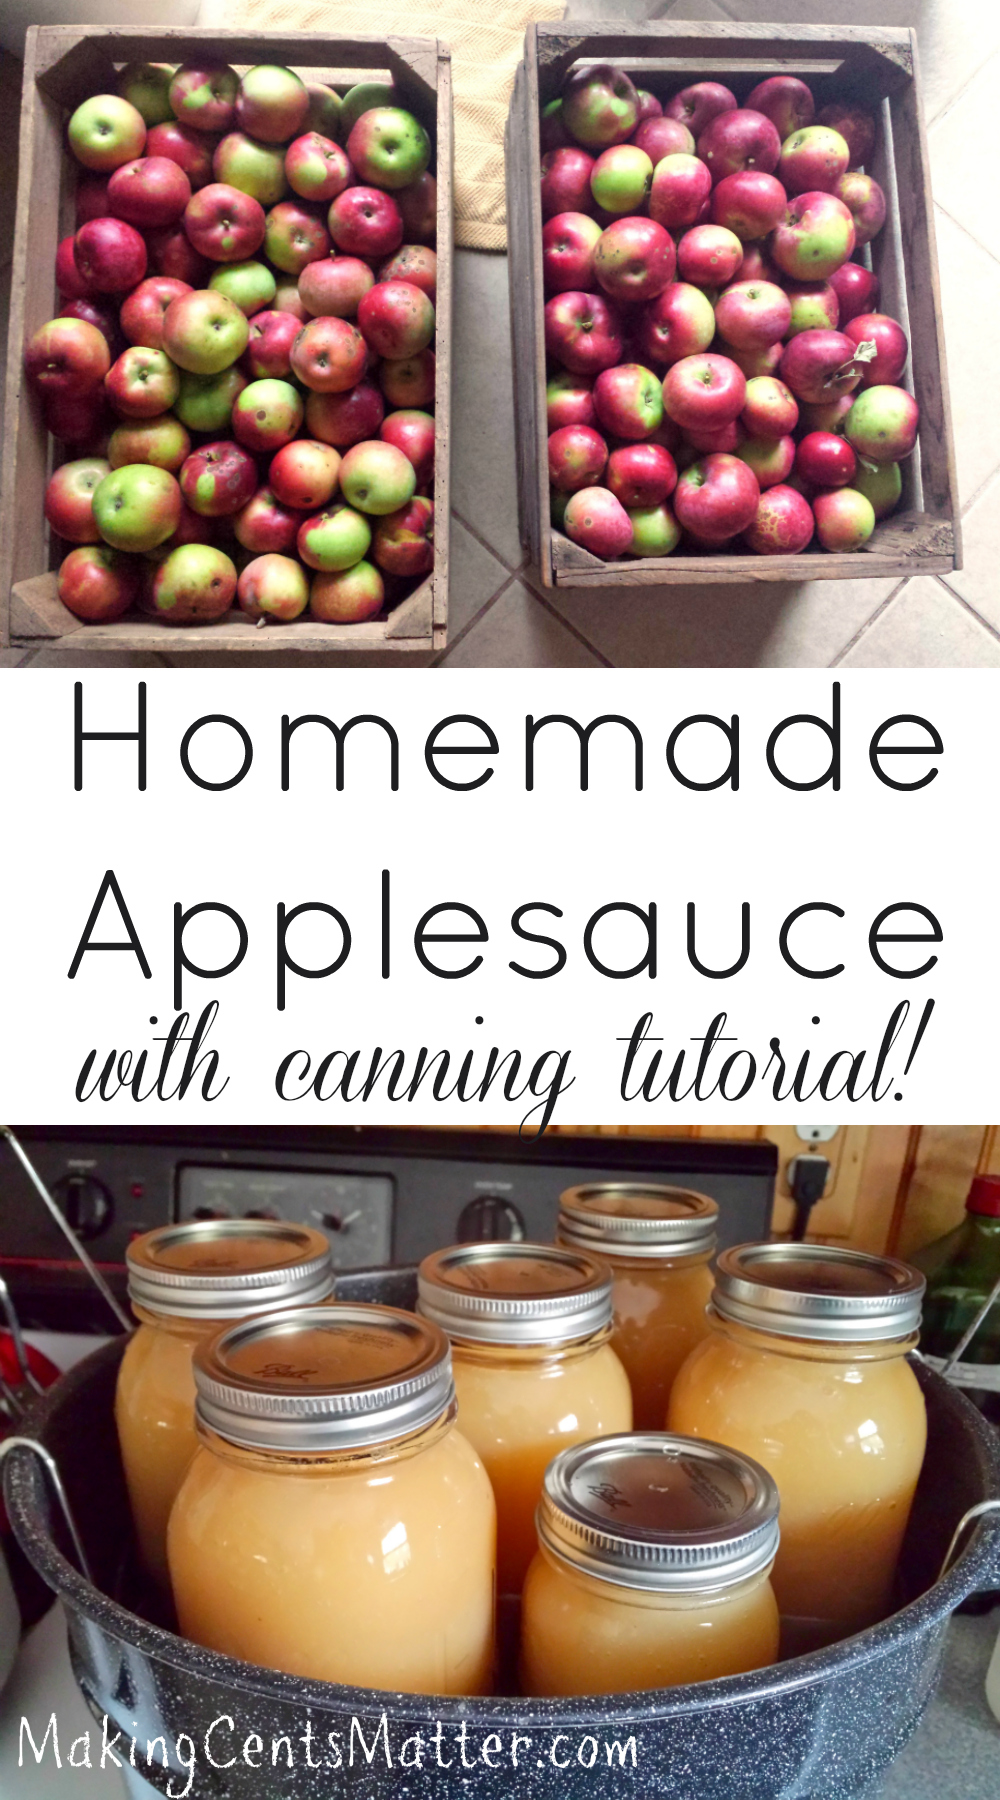 homemade-applesauce-canning-tutorial